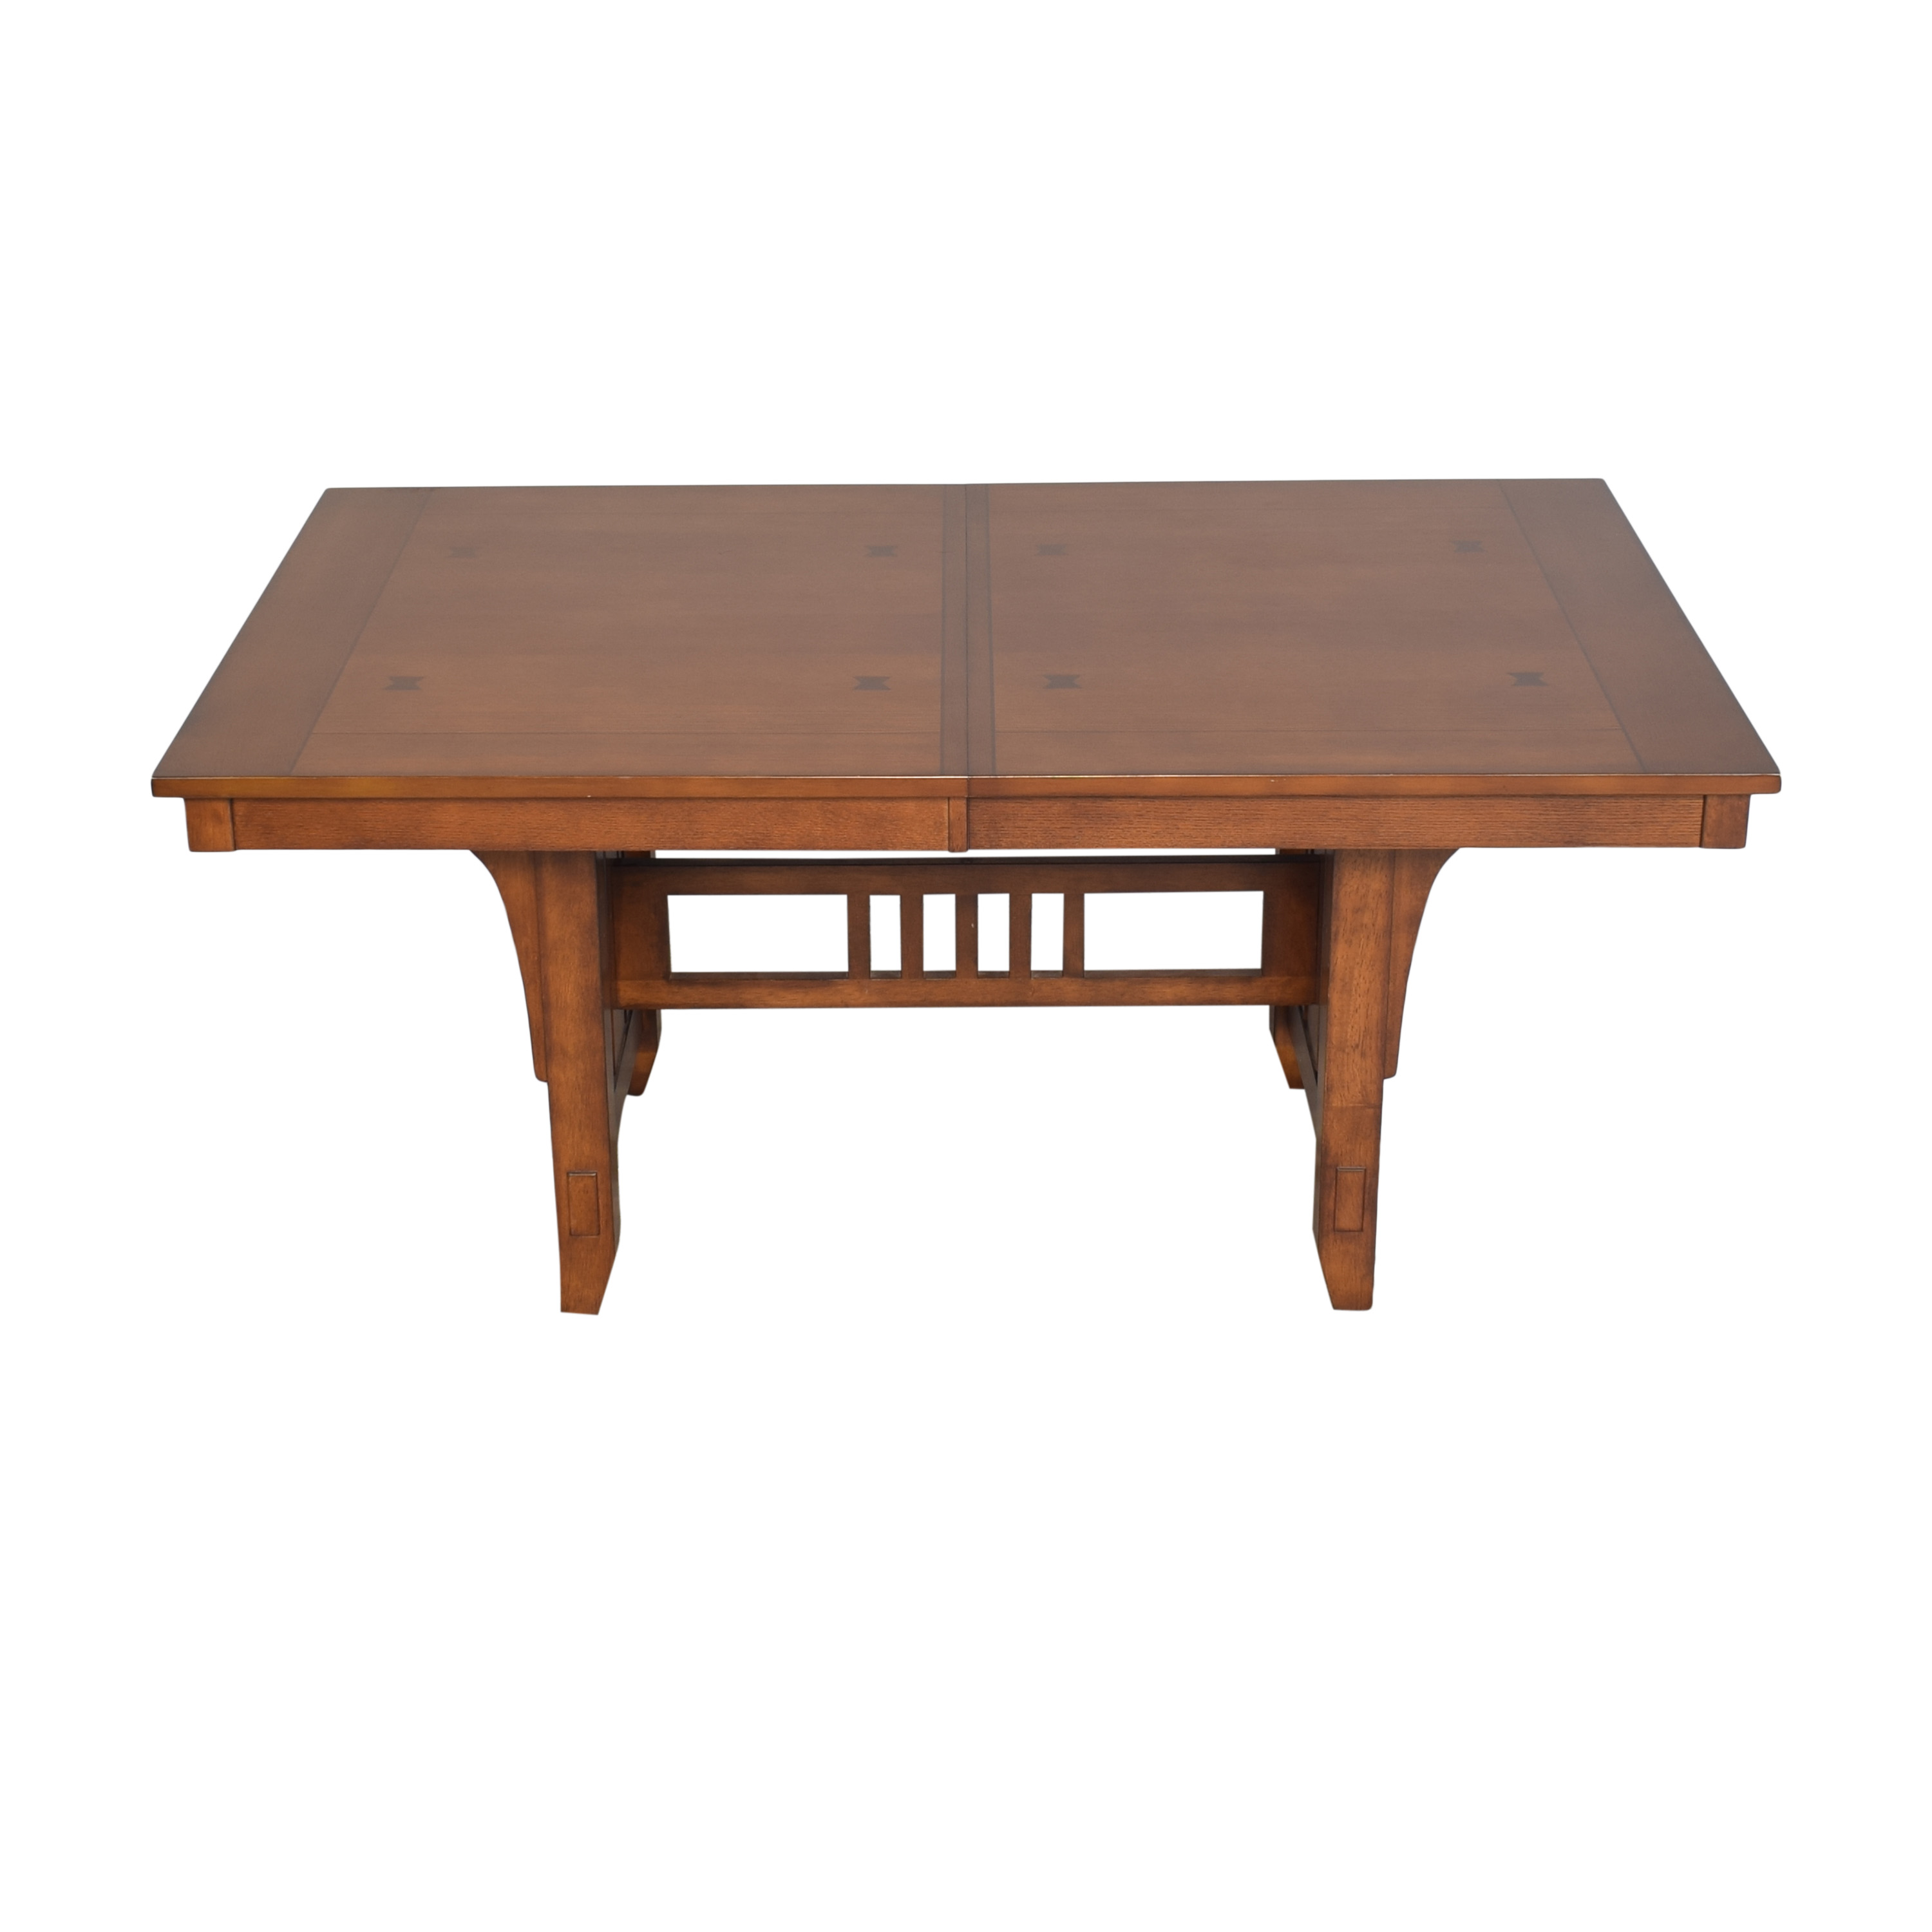 Green River Furniture Green River Mission Style Extendable Dining Table price